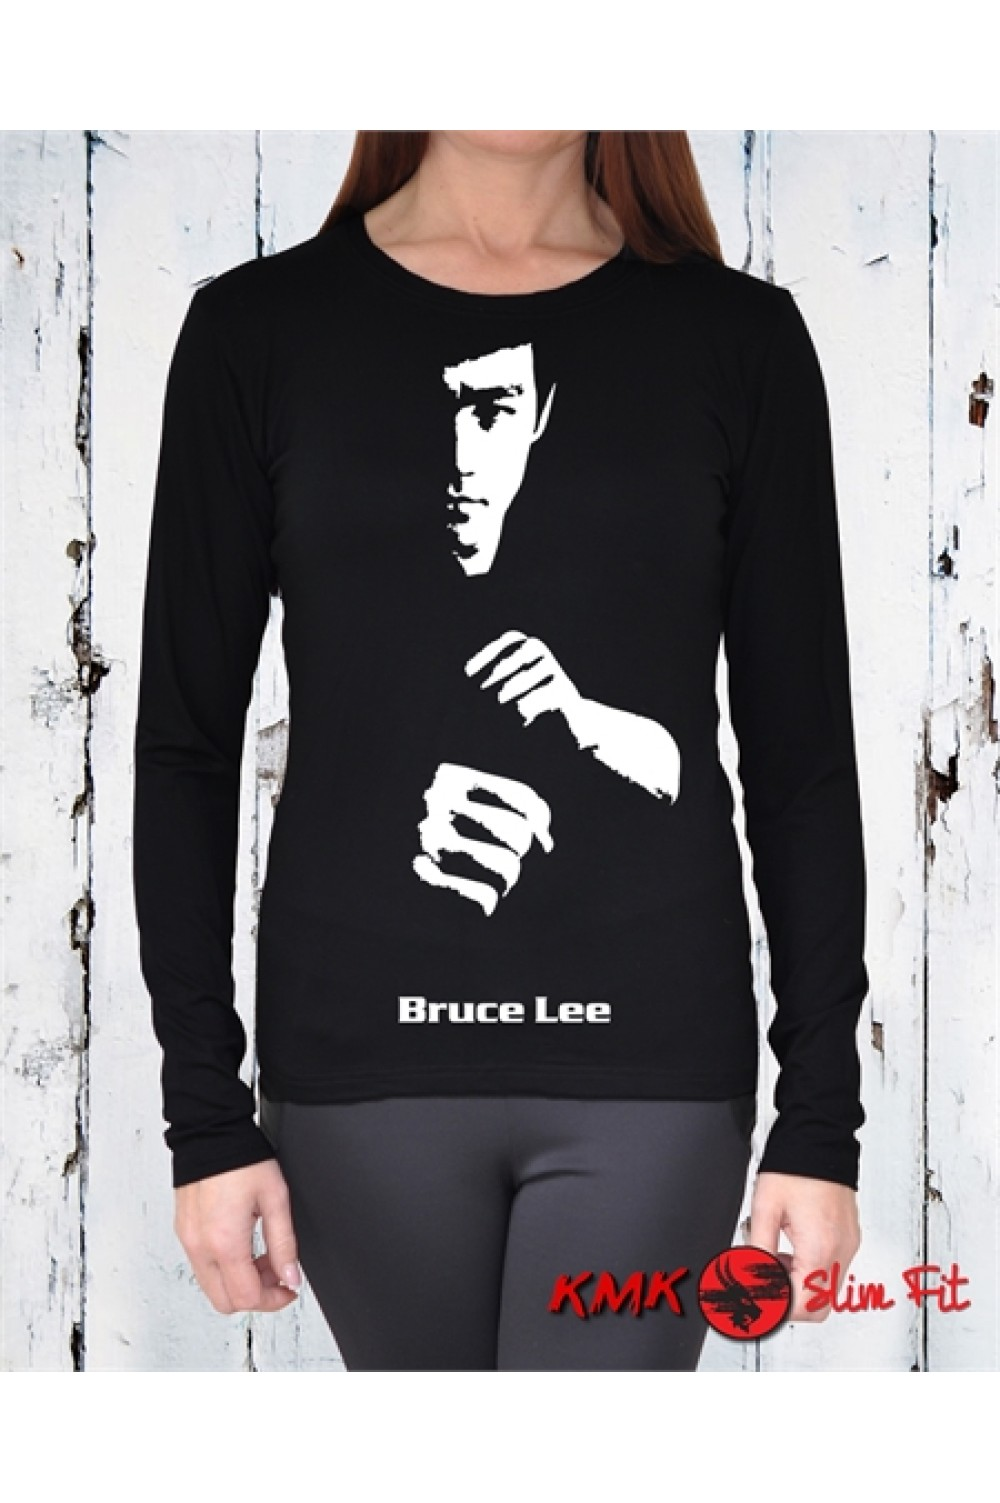 BRUCE LEE 5 Printed T shirt | Bruce Lee Tanktop | Bruce Lee Tee | Motivation Shirt